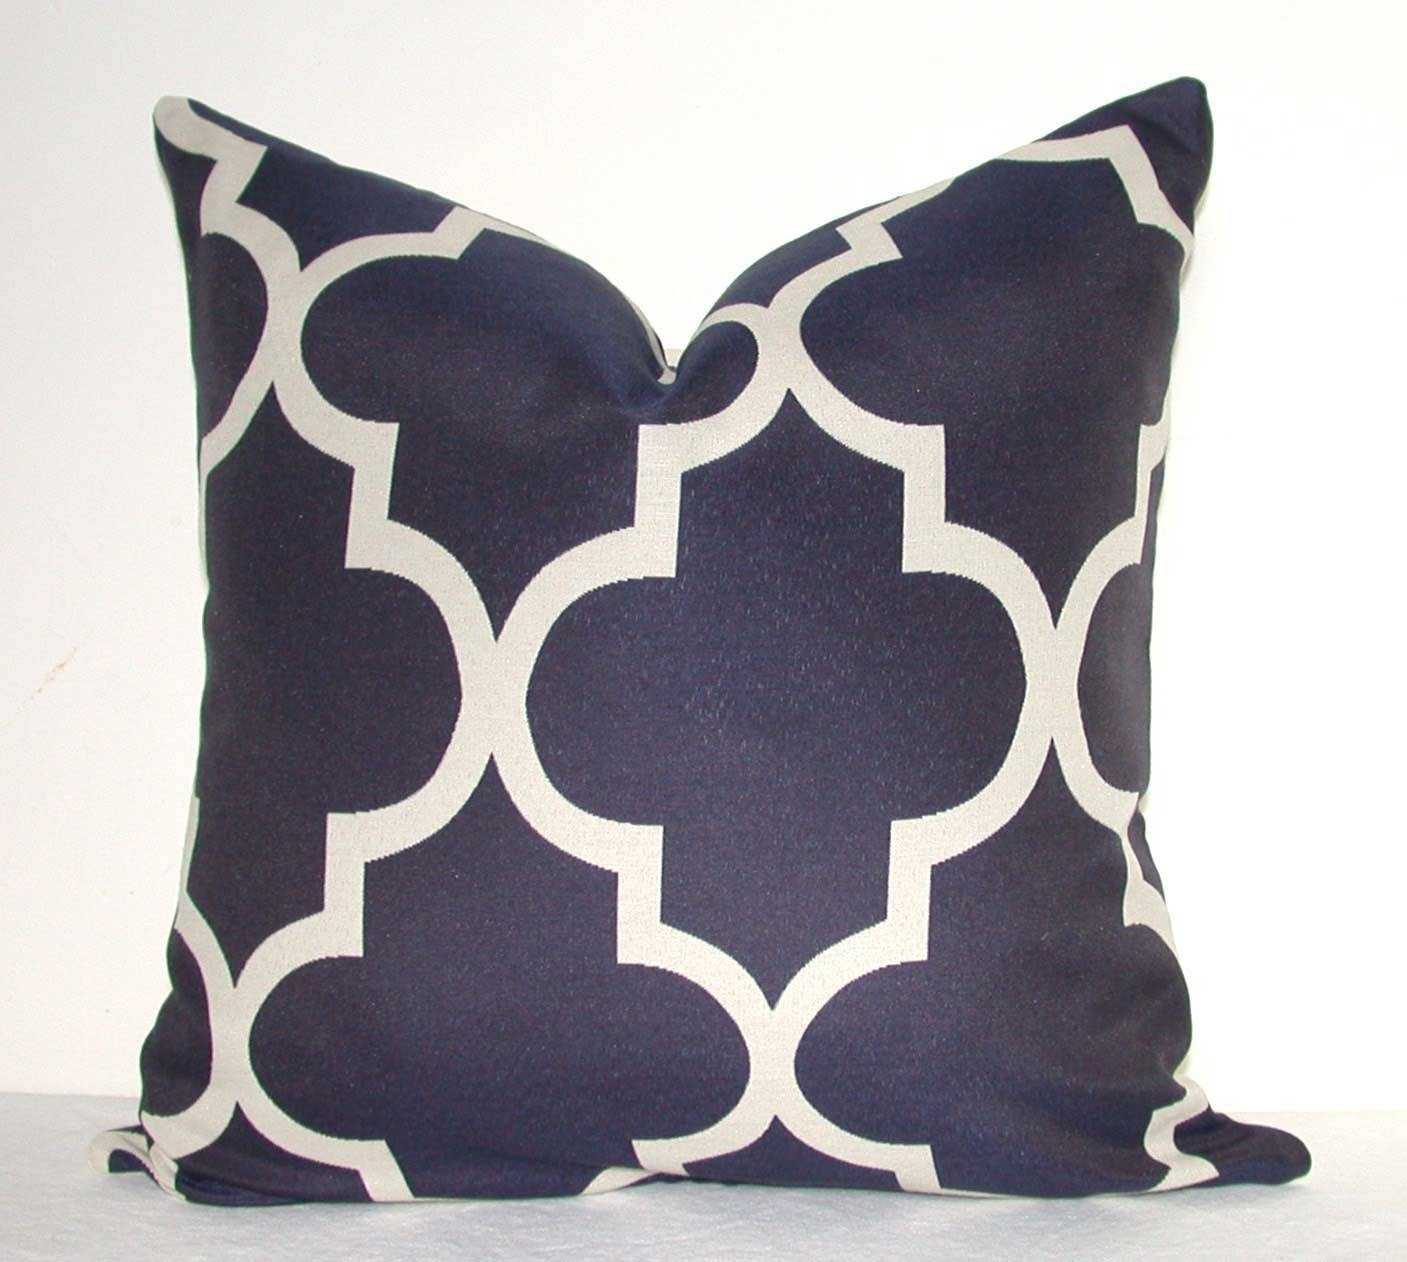 Decor: Oversized Throw Pillows | Throw Pillow Sets | Purple Throw inside Oversized Sofa Pillows (Image 9 of 30)